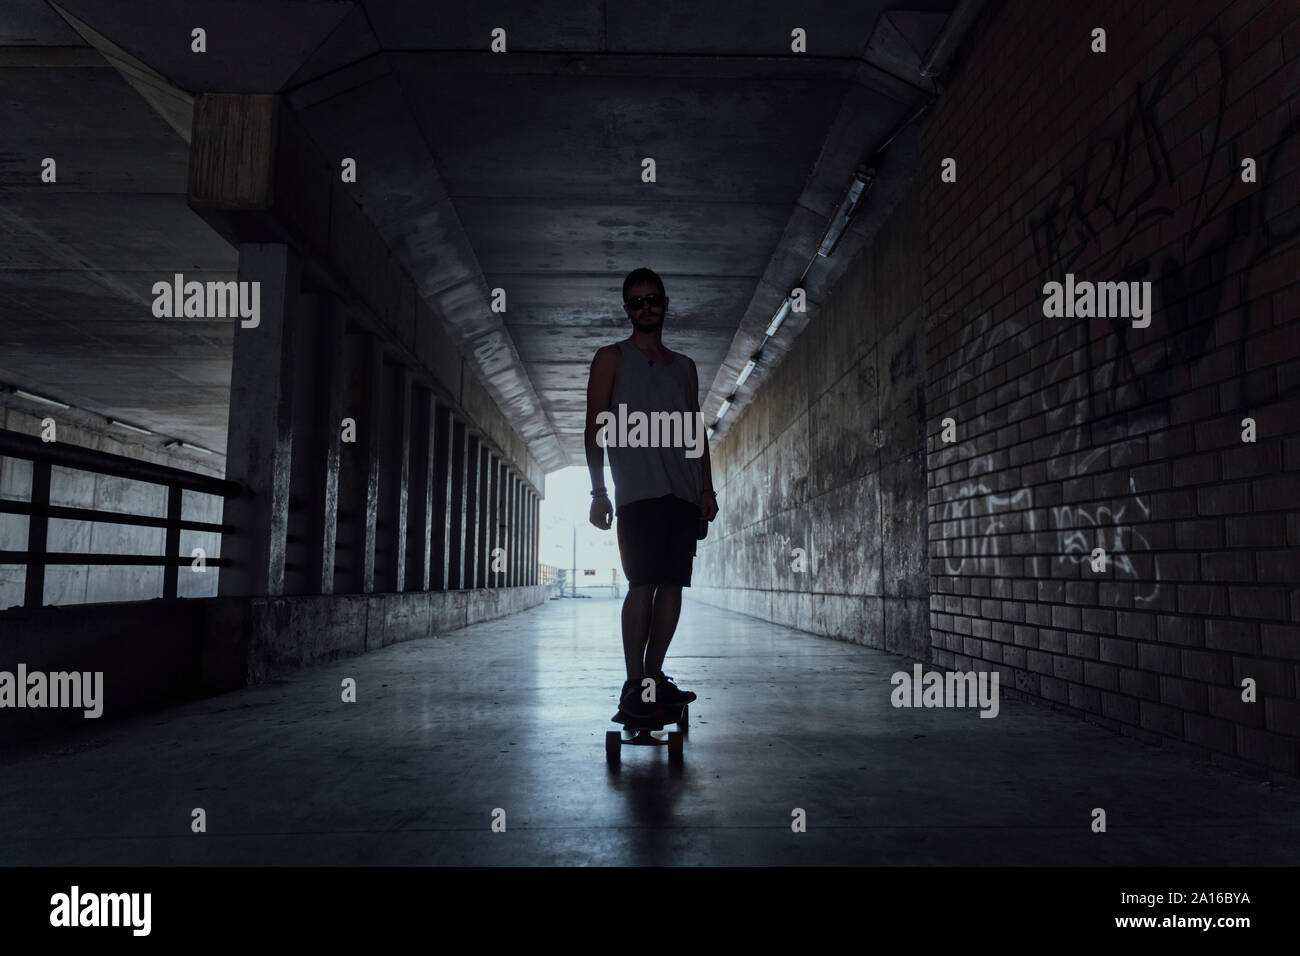 Young man with longboard in a tunnel Stock Photo